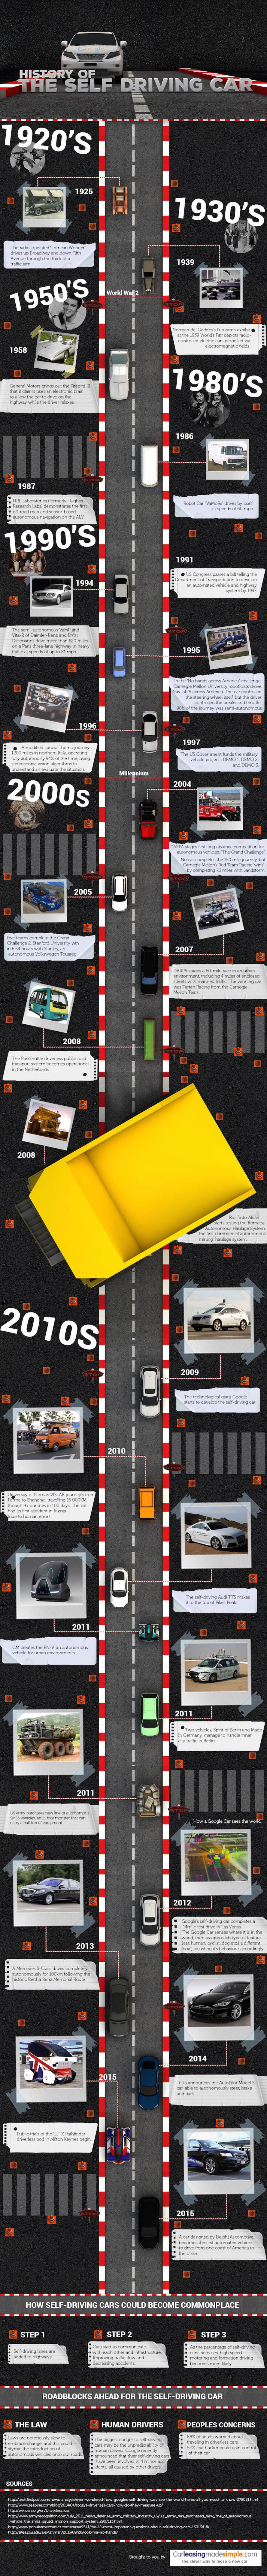 self-driving cars, self-driving cars history, autonomous cars, autonomous cars history, Google self driving car, Tesla self driving car, infographic, self driving car infographic, reader submitted content, Car leasing made simple